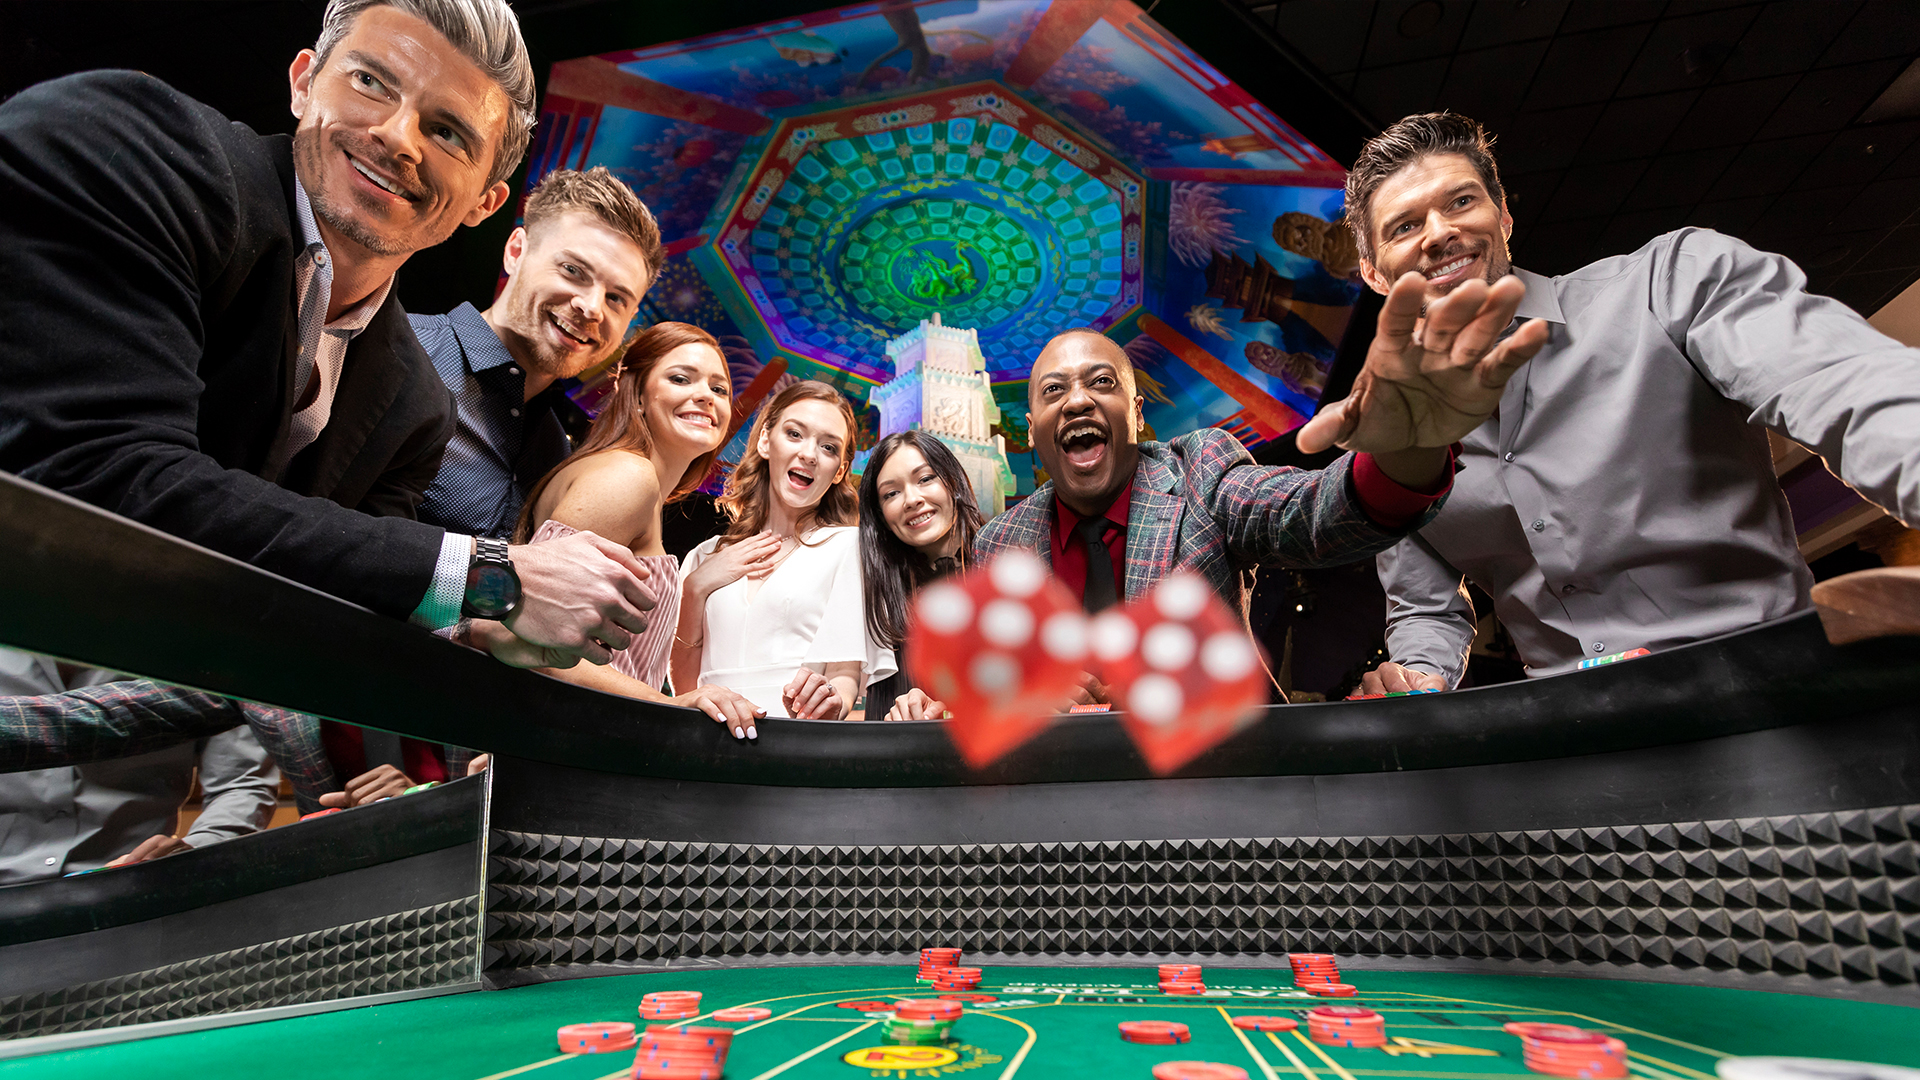 Choose Your Options for Online Sports betting